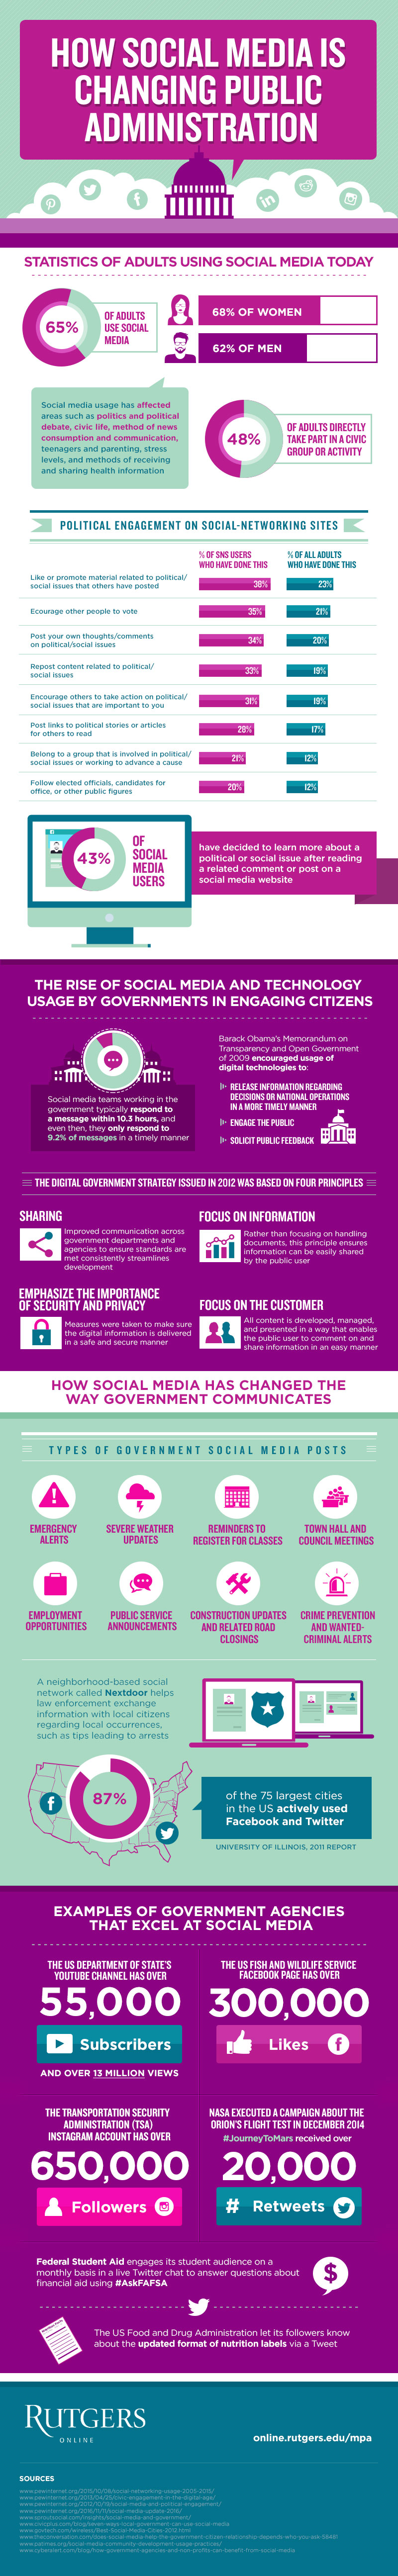 Social Media: The New Communication Tool that is Changing Public Administration - Infographic